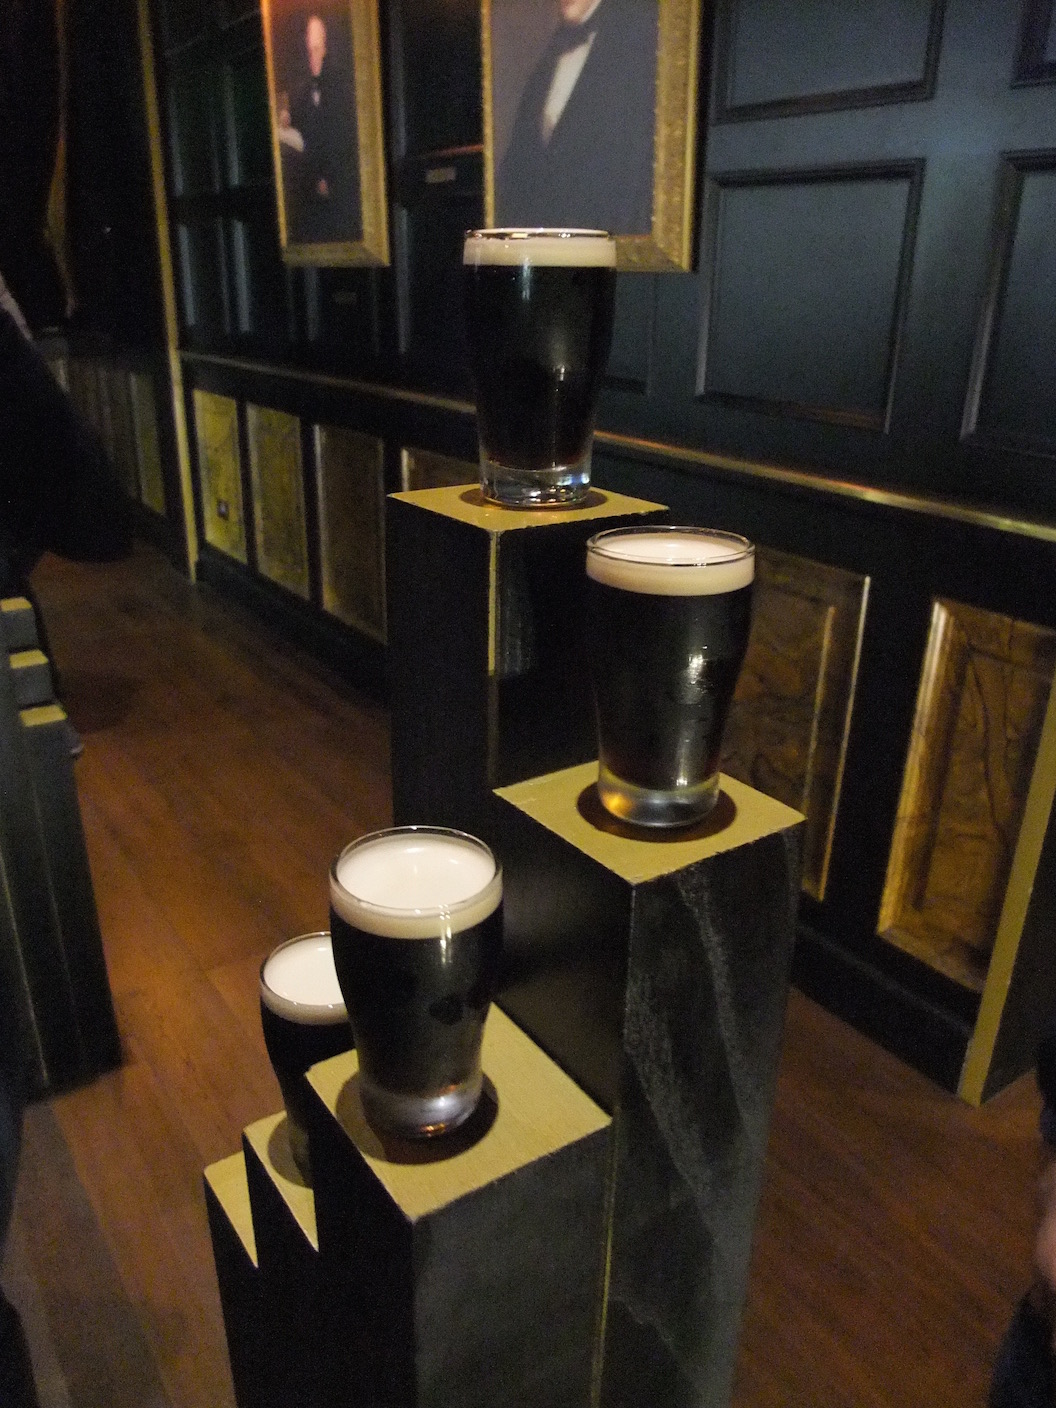 Tasting Guinness at the Guinness Experience